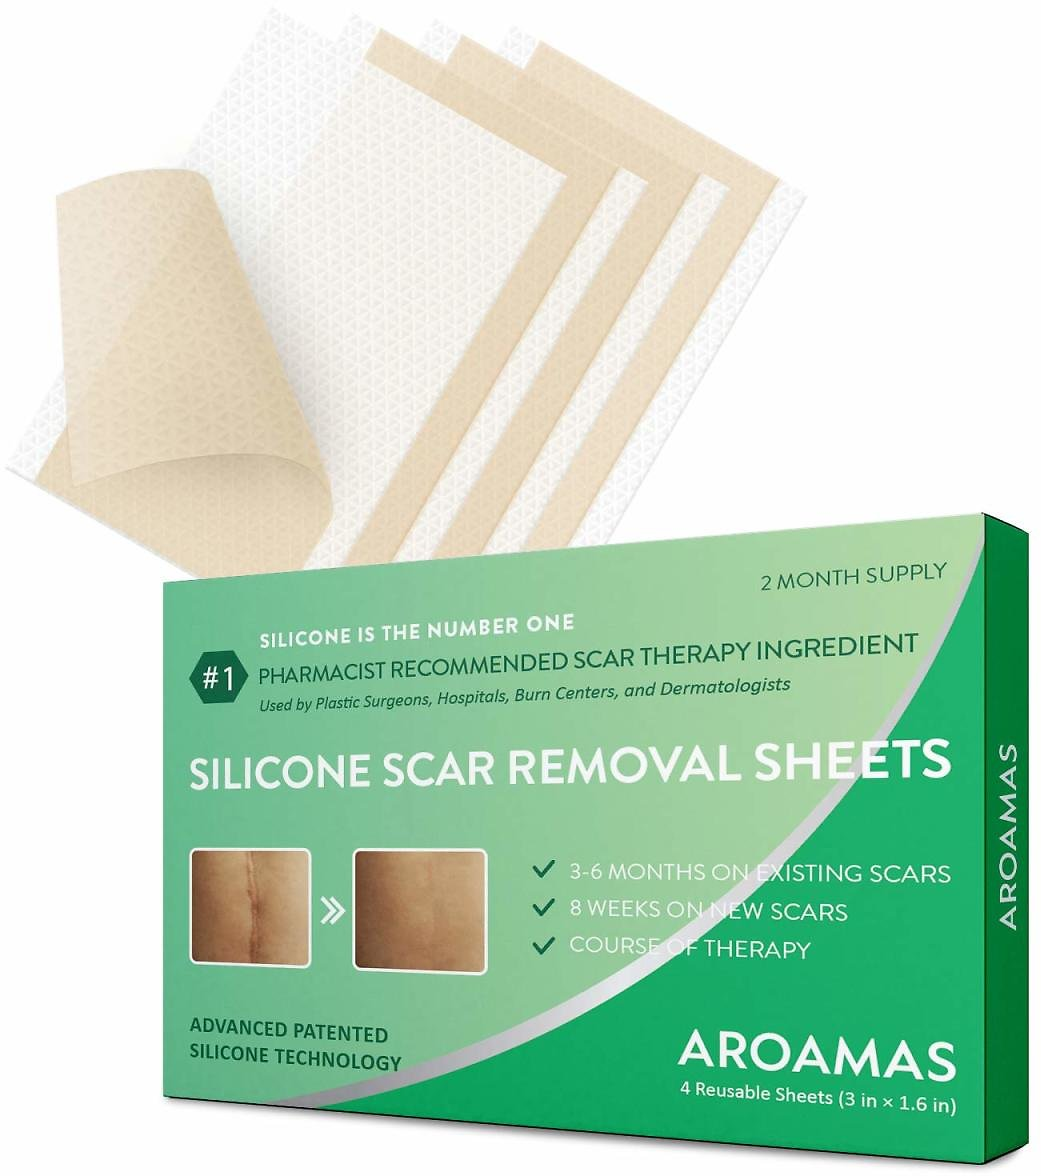 Aroamas Silicone Scar Removal Sheets - Reusable and Washable 3